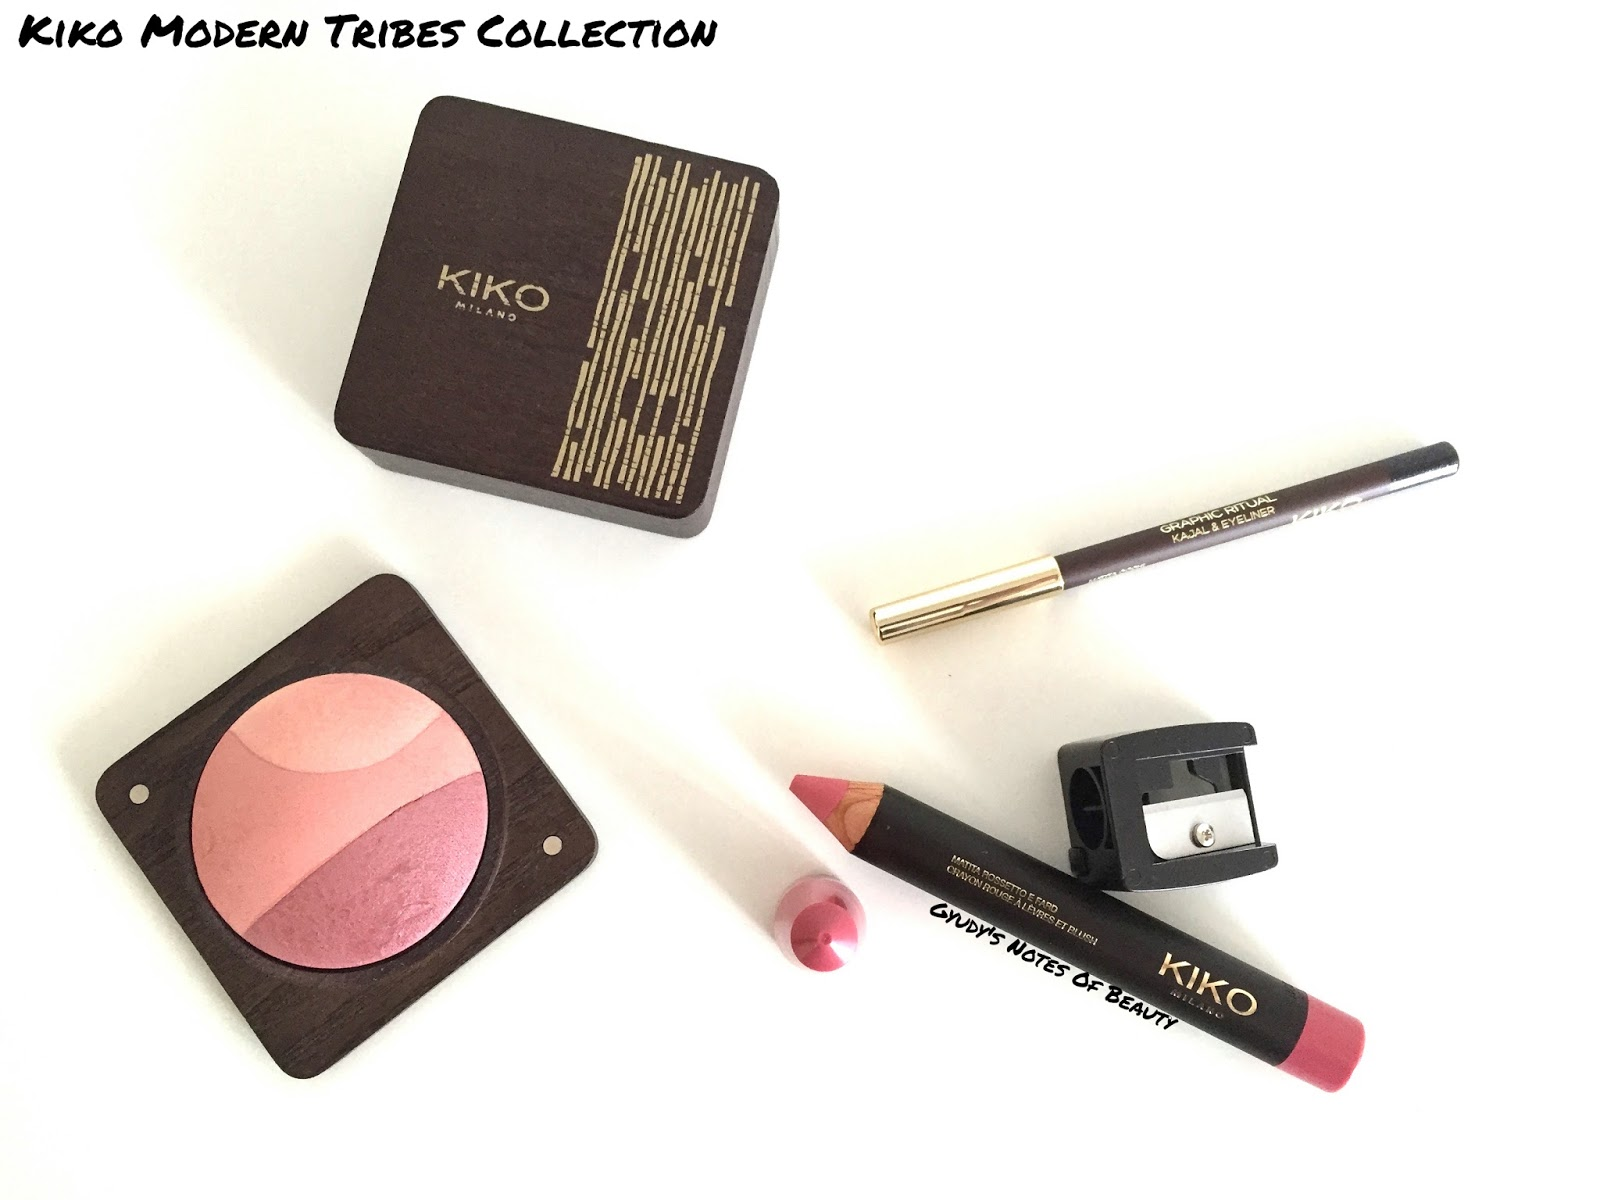 Kiko Modern Tribes Collection Review Graphic Ritual Free Spirit Tribal Soul Blush Pencil